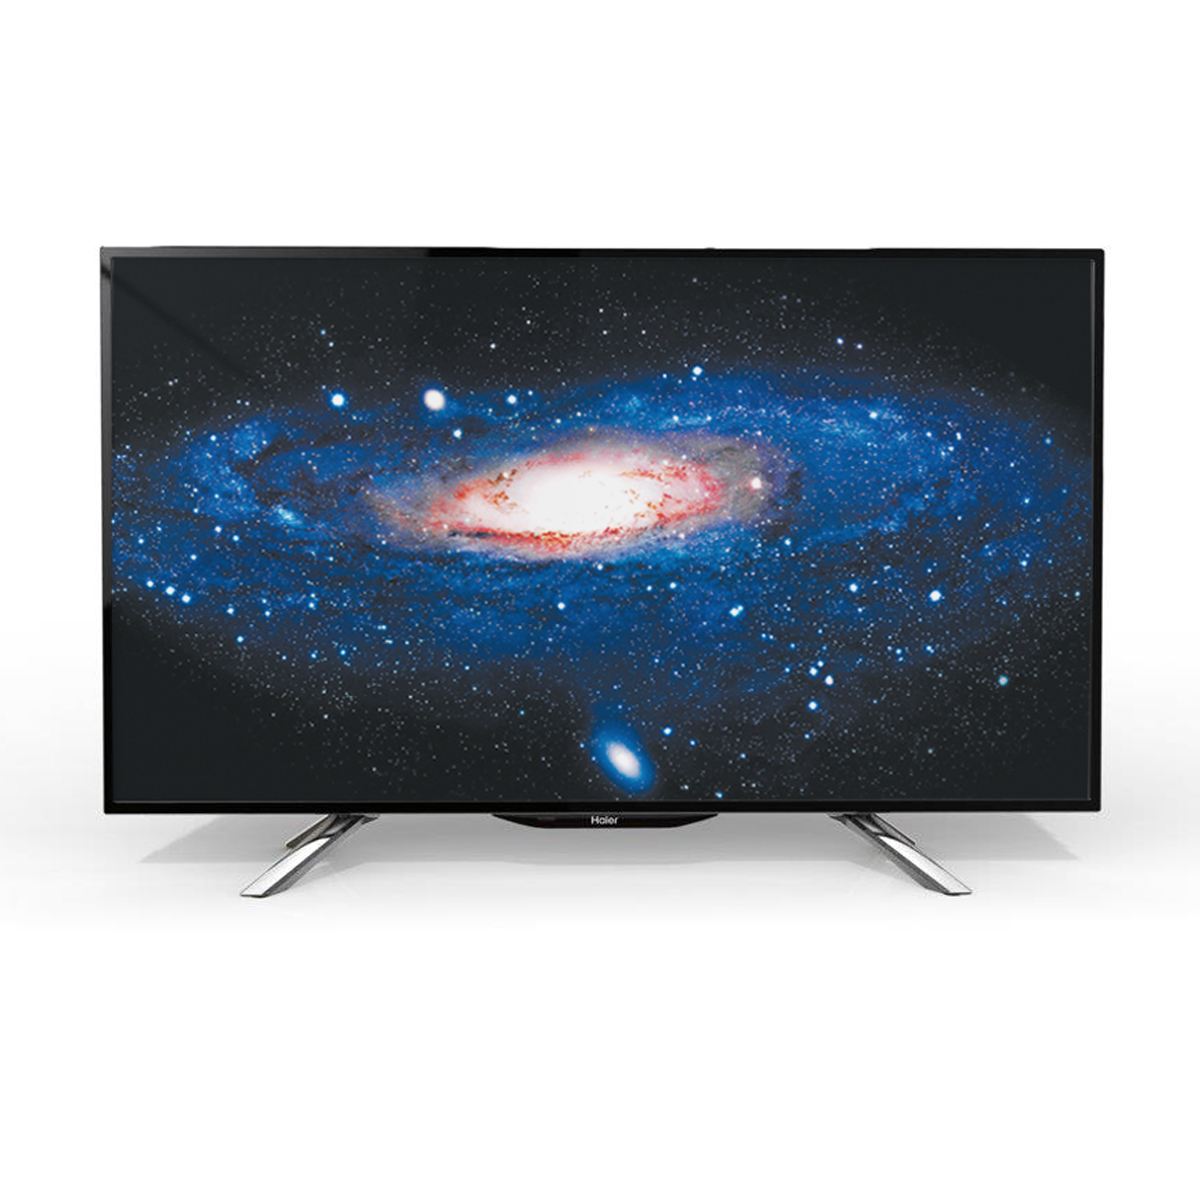 1080439 besides Beats Studio3 Wireless Over Ear Headphones Porcelain Rose moreover Hisense 40 Inch Roku Tv review 2521 furthermore Marantz Ud5005region Free 3 D Blu Ray Player furthermore Iphone Accessories. on how to connect headphones a tv with only